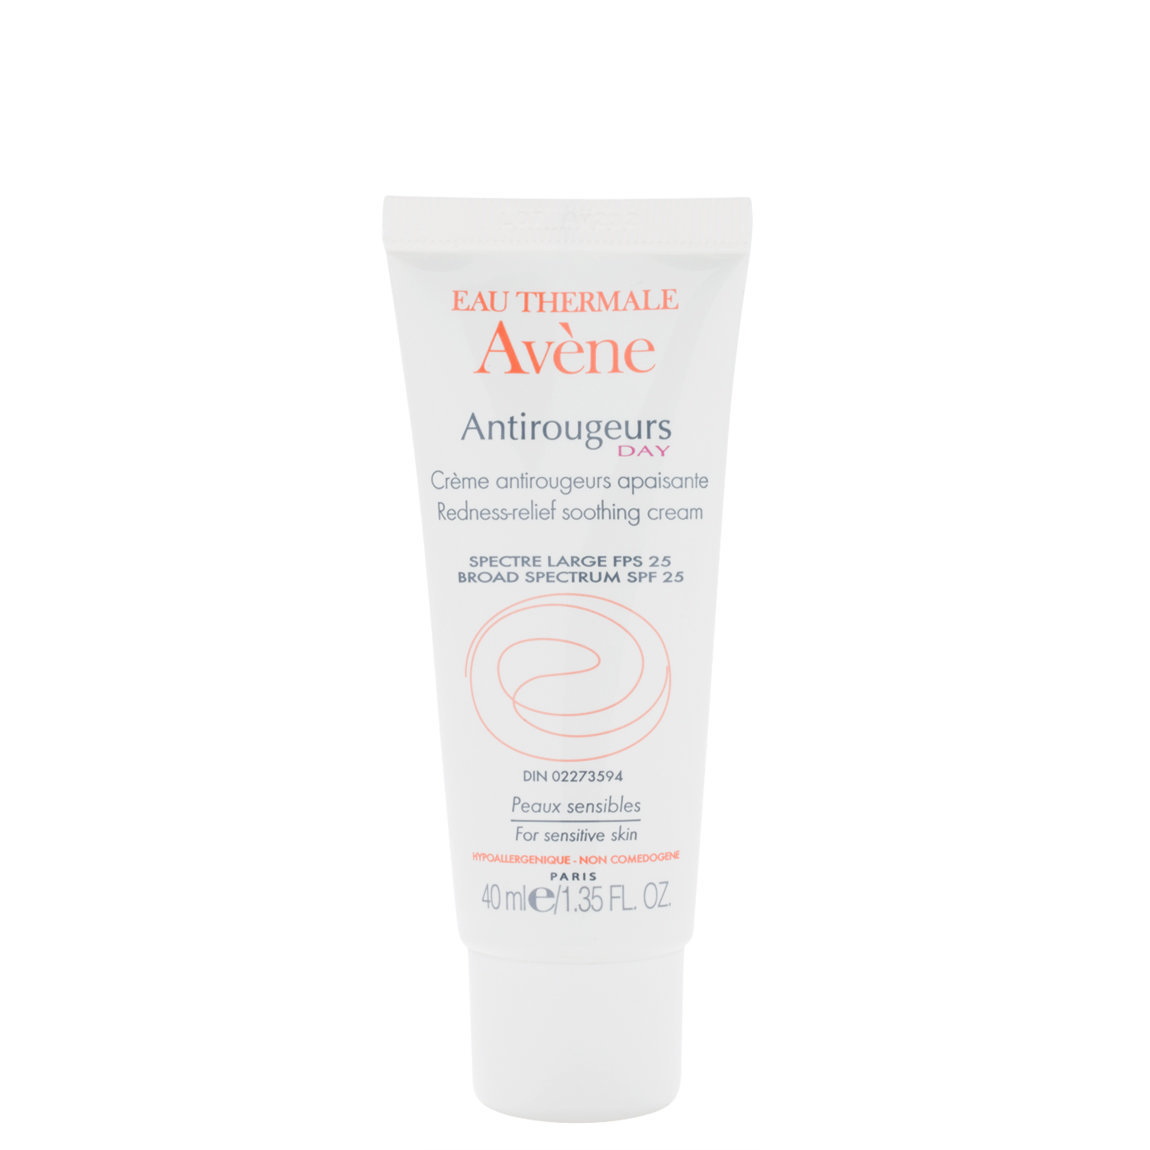 Eau Thermale Avène Antirougeurs Day Redness Relief Soothing Cream SPF 25 product smear.